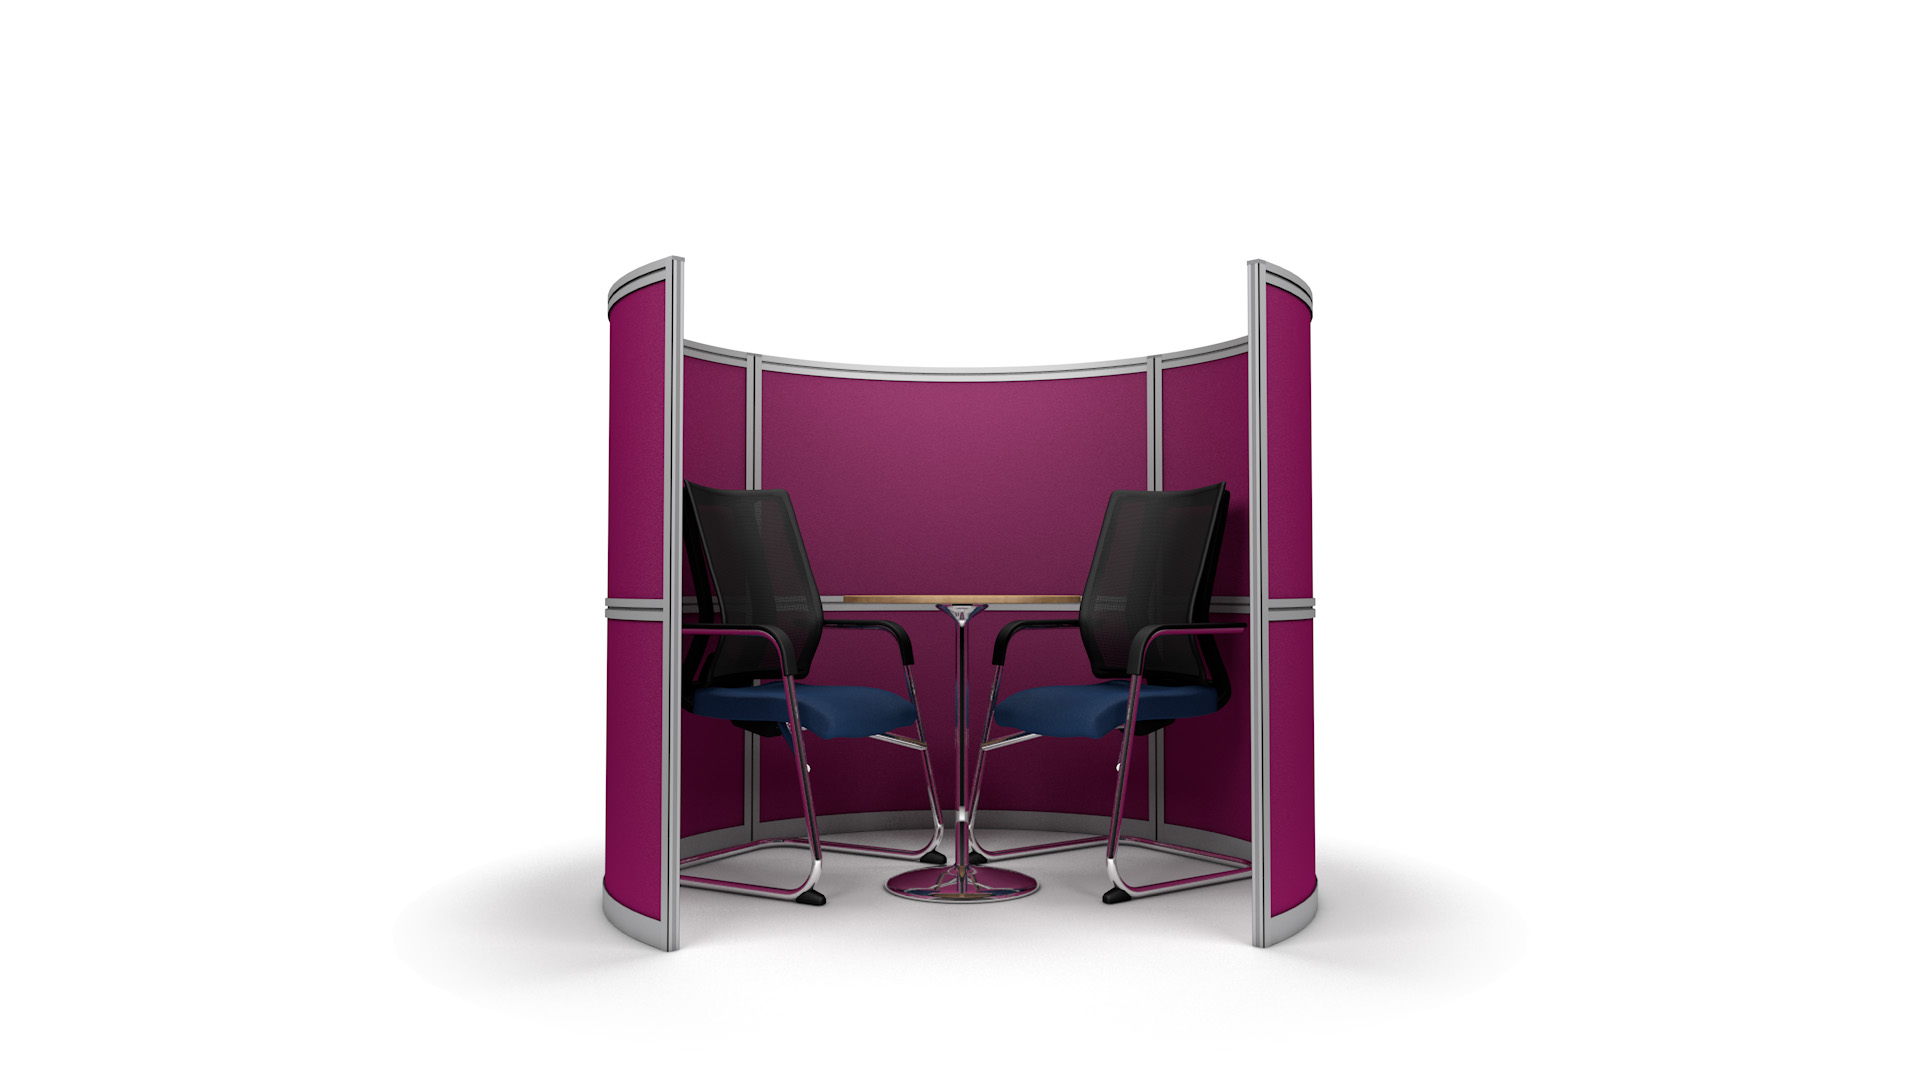 2 Person Curved Office Meeting Pod 1.7m Wide